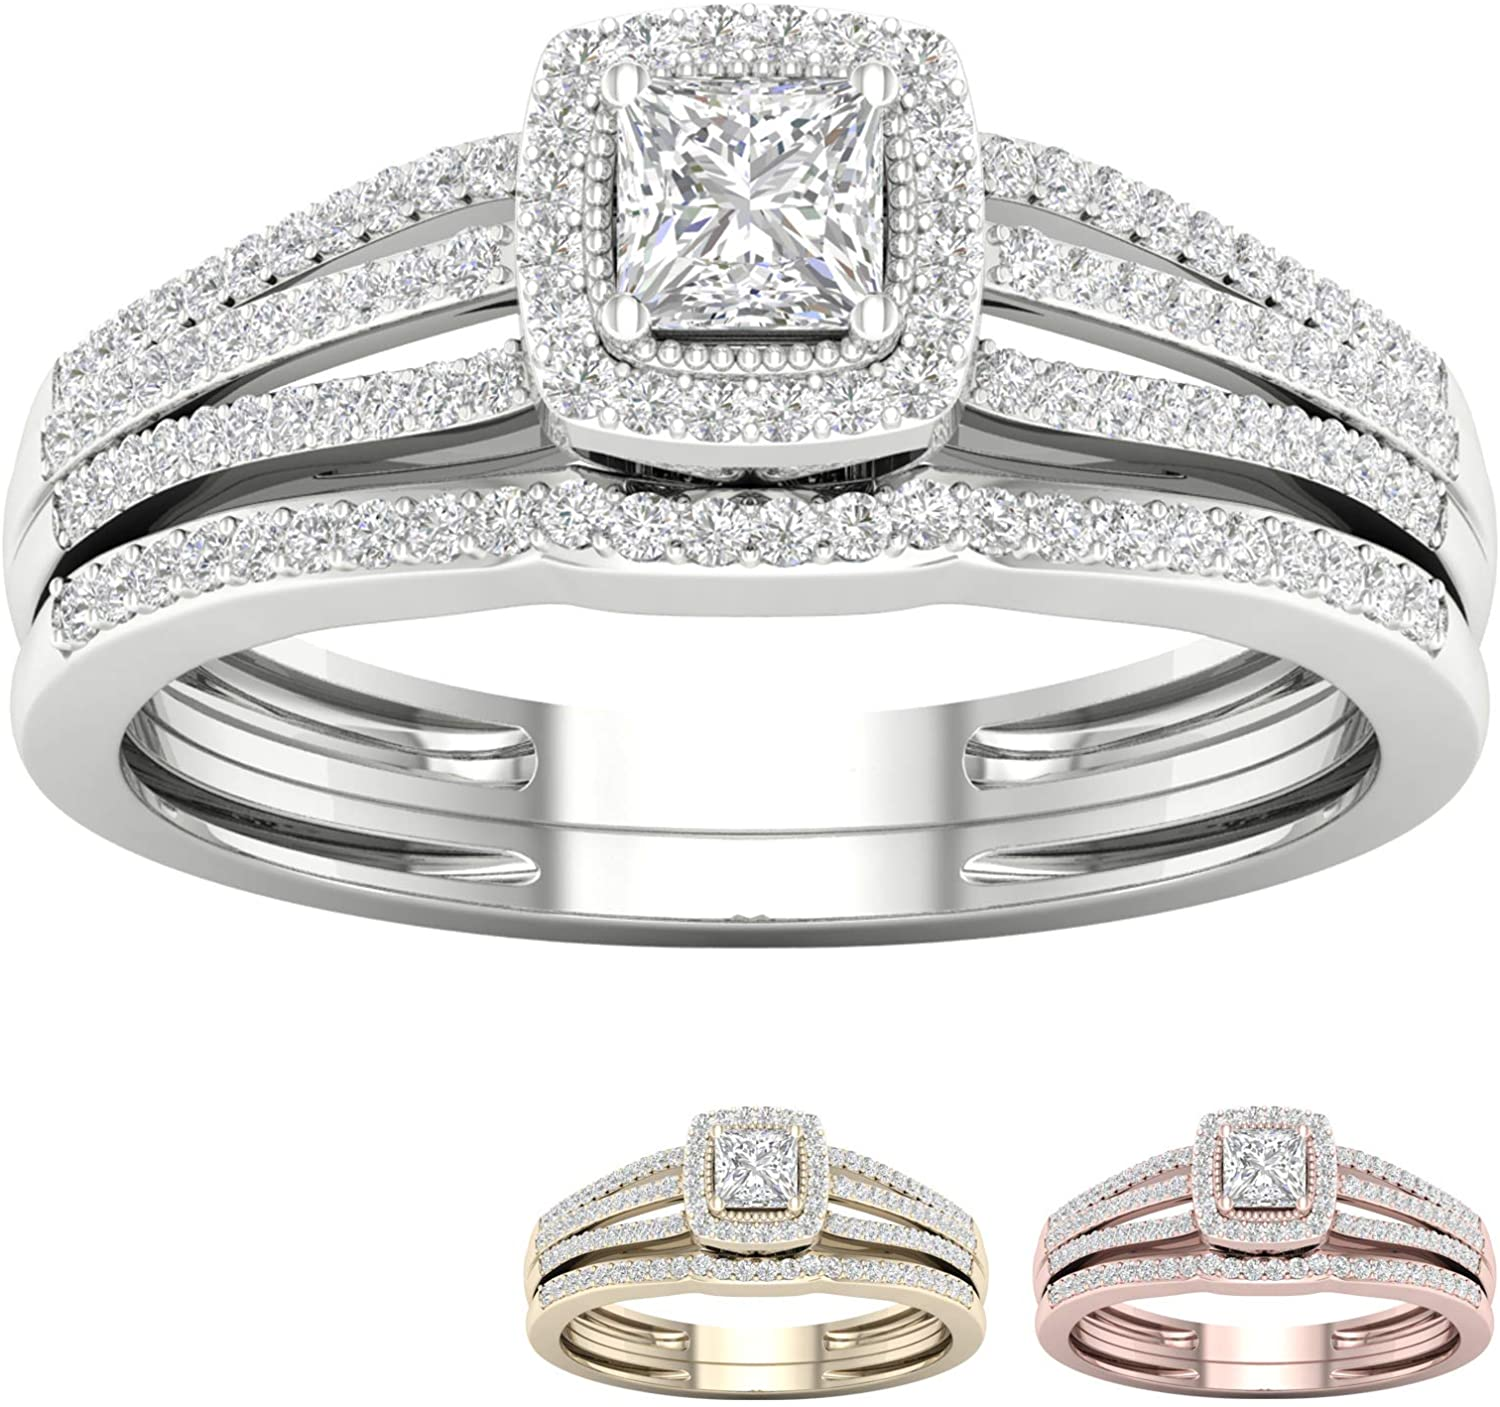 IGI Certified 10k Gold 1/2 Ct TDW Diamond Halo Engagement Ring Set (I-J,I2)